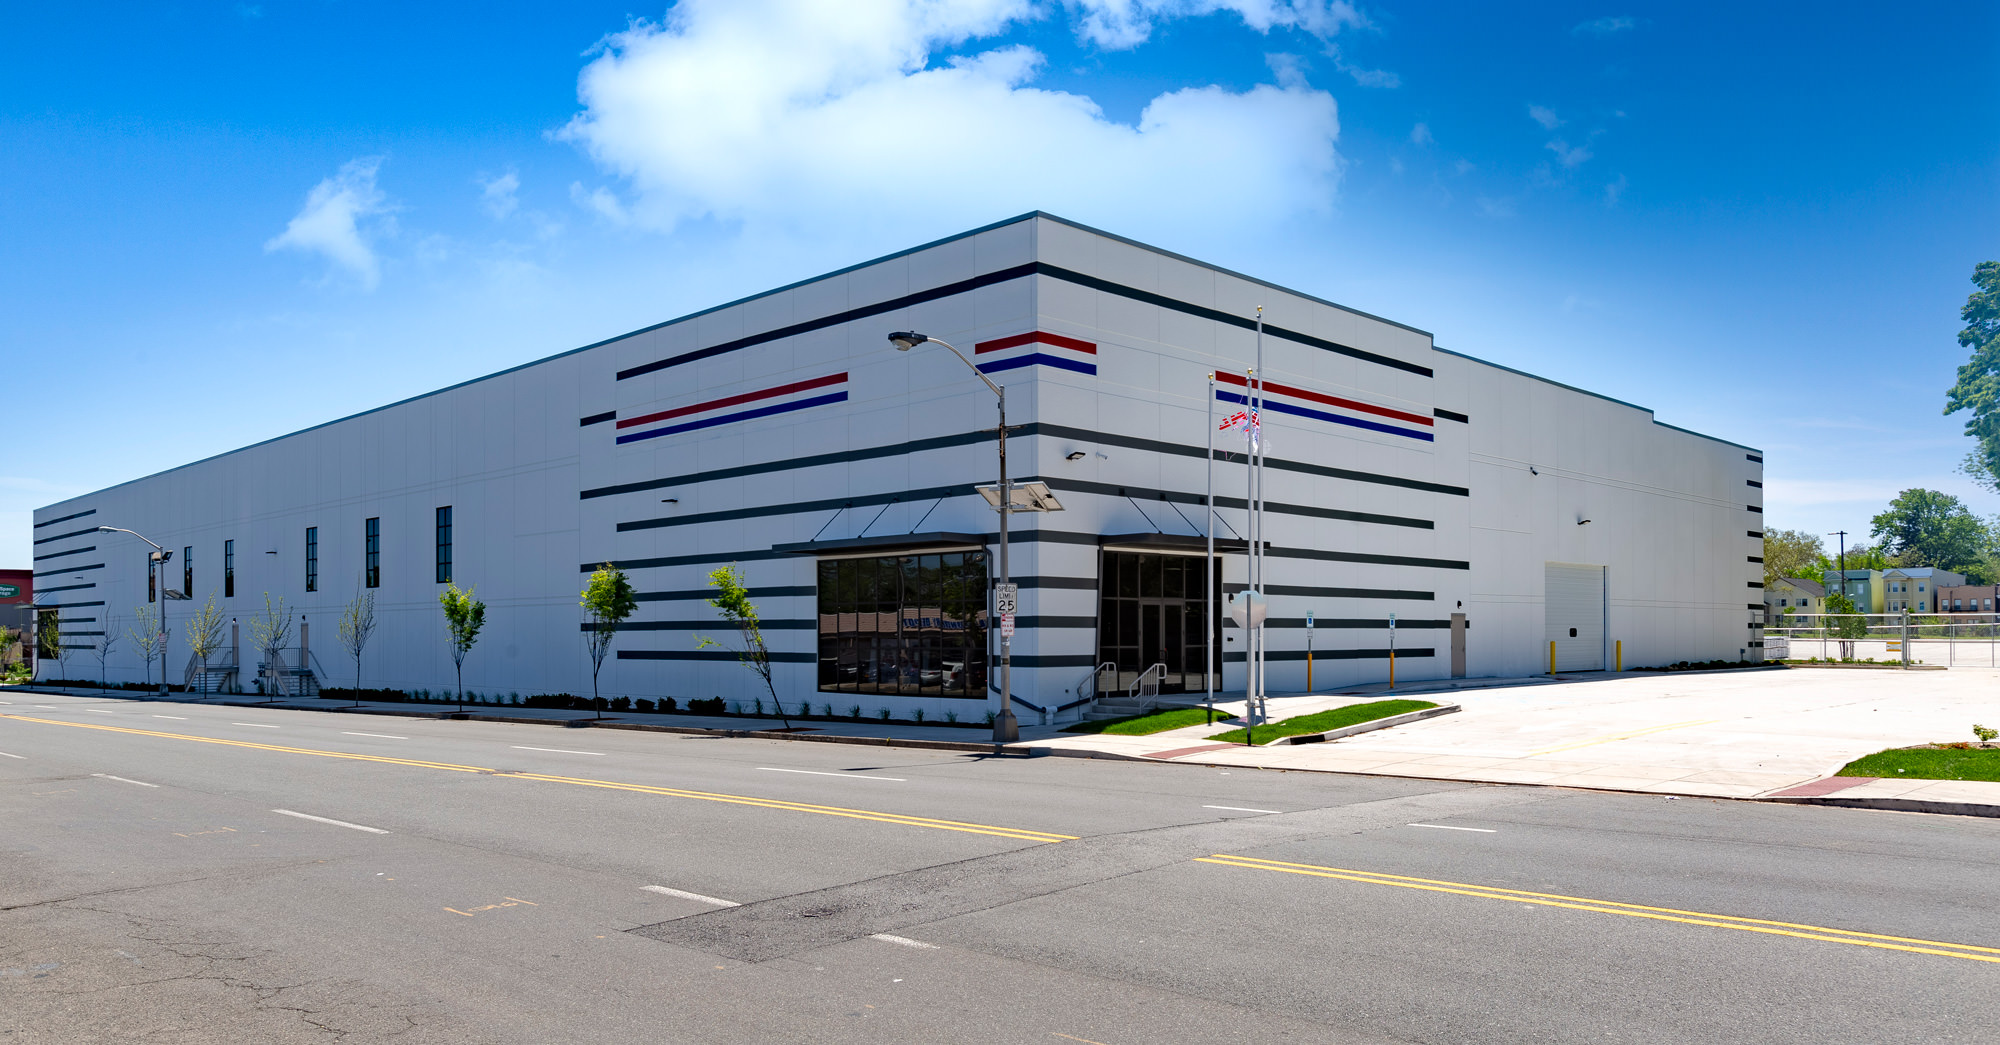 J.G. Petrucci inks 30,390 sq. ft. lease at newly construed building in East Orange, New Jersey